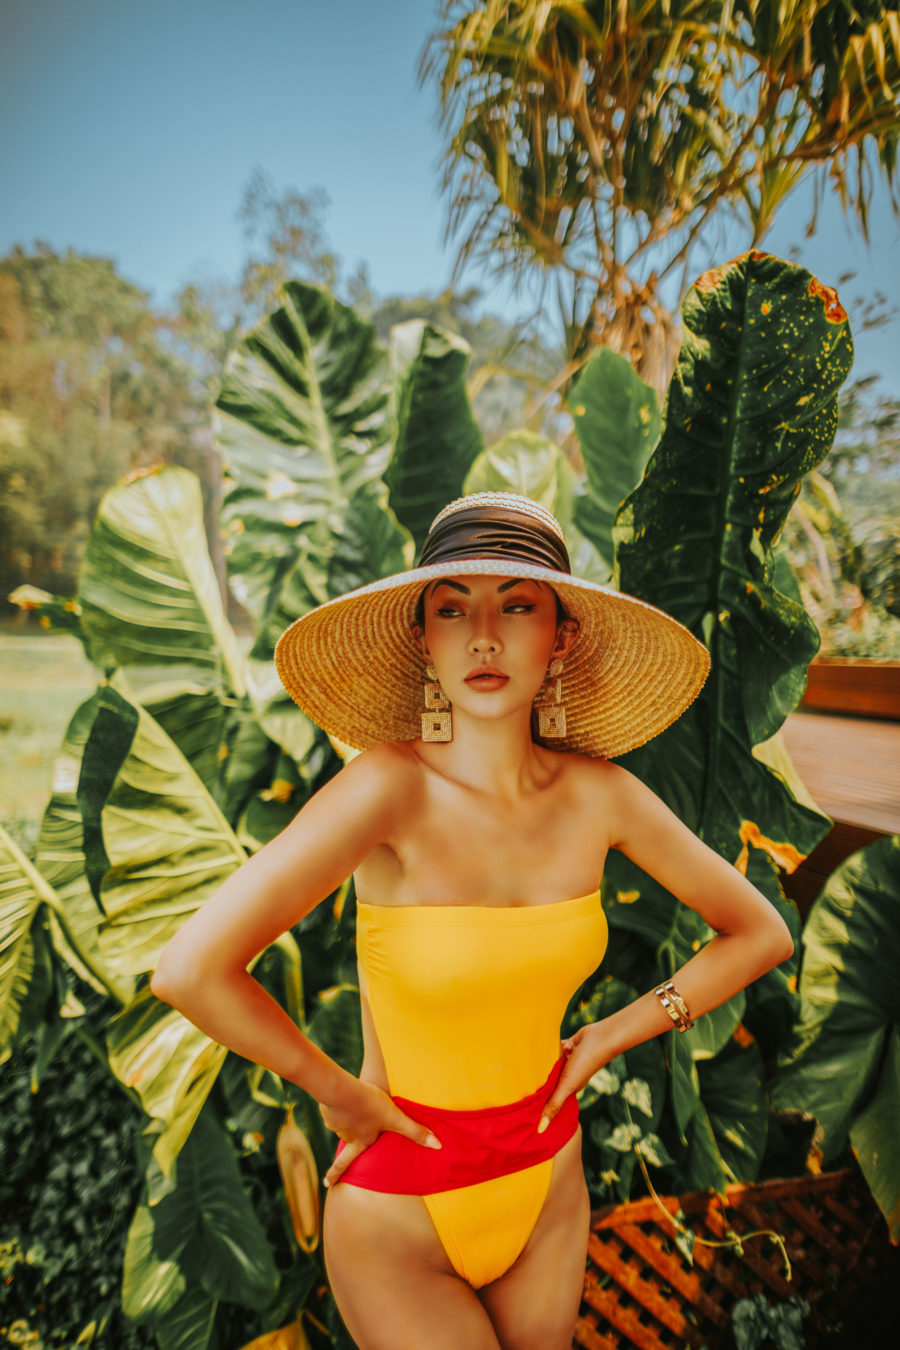 jessica wang wearing a one piece swimsuit and wide brim hat while sharing 2021 swim trends // Jessica Wang - Notjessfashion.com